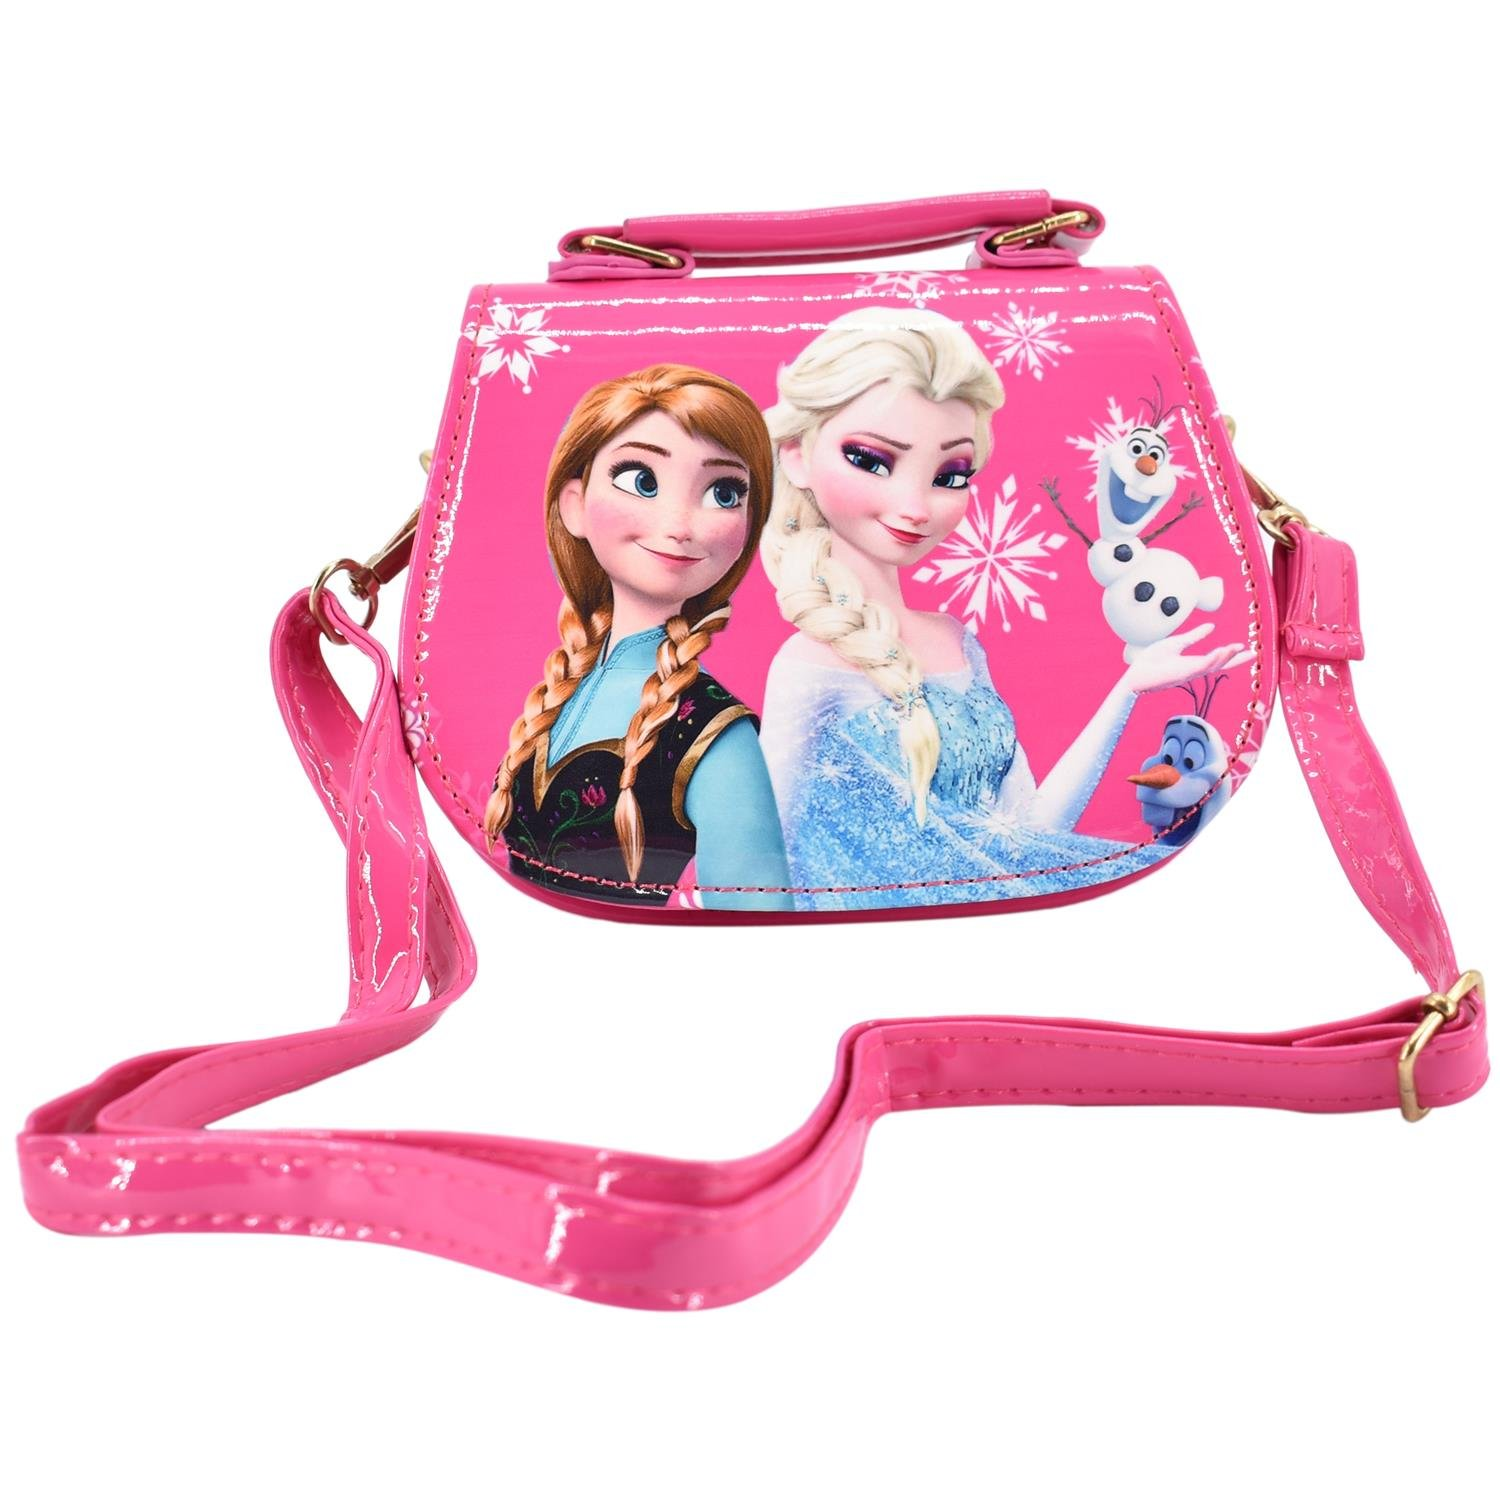 f2c4ae105ad Buy Frozen Handbags Cute Sling Bag Wallet Purse For Kids Girls Gift 2-5Y -  Dark Pink Online at Low Prices in India - Amazon.in